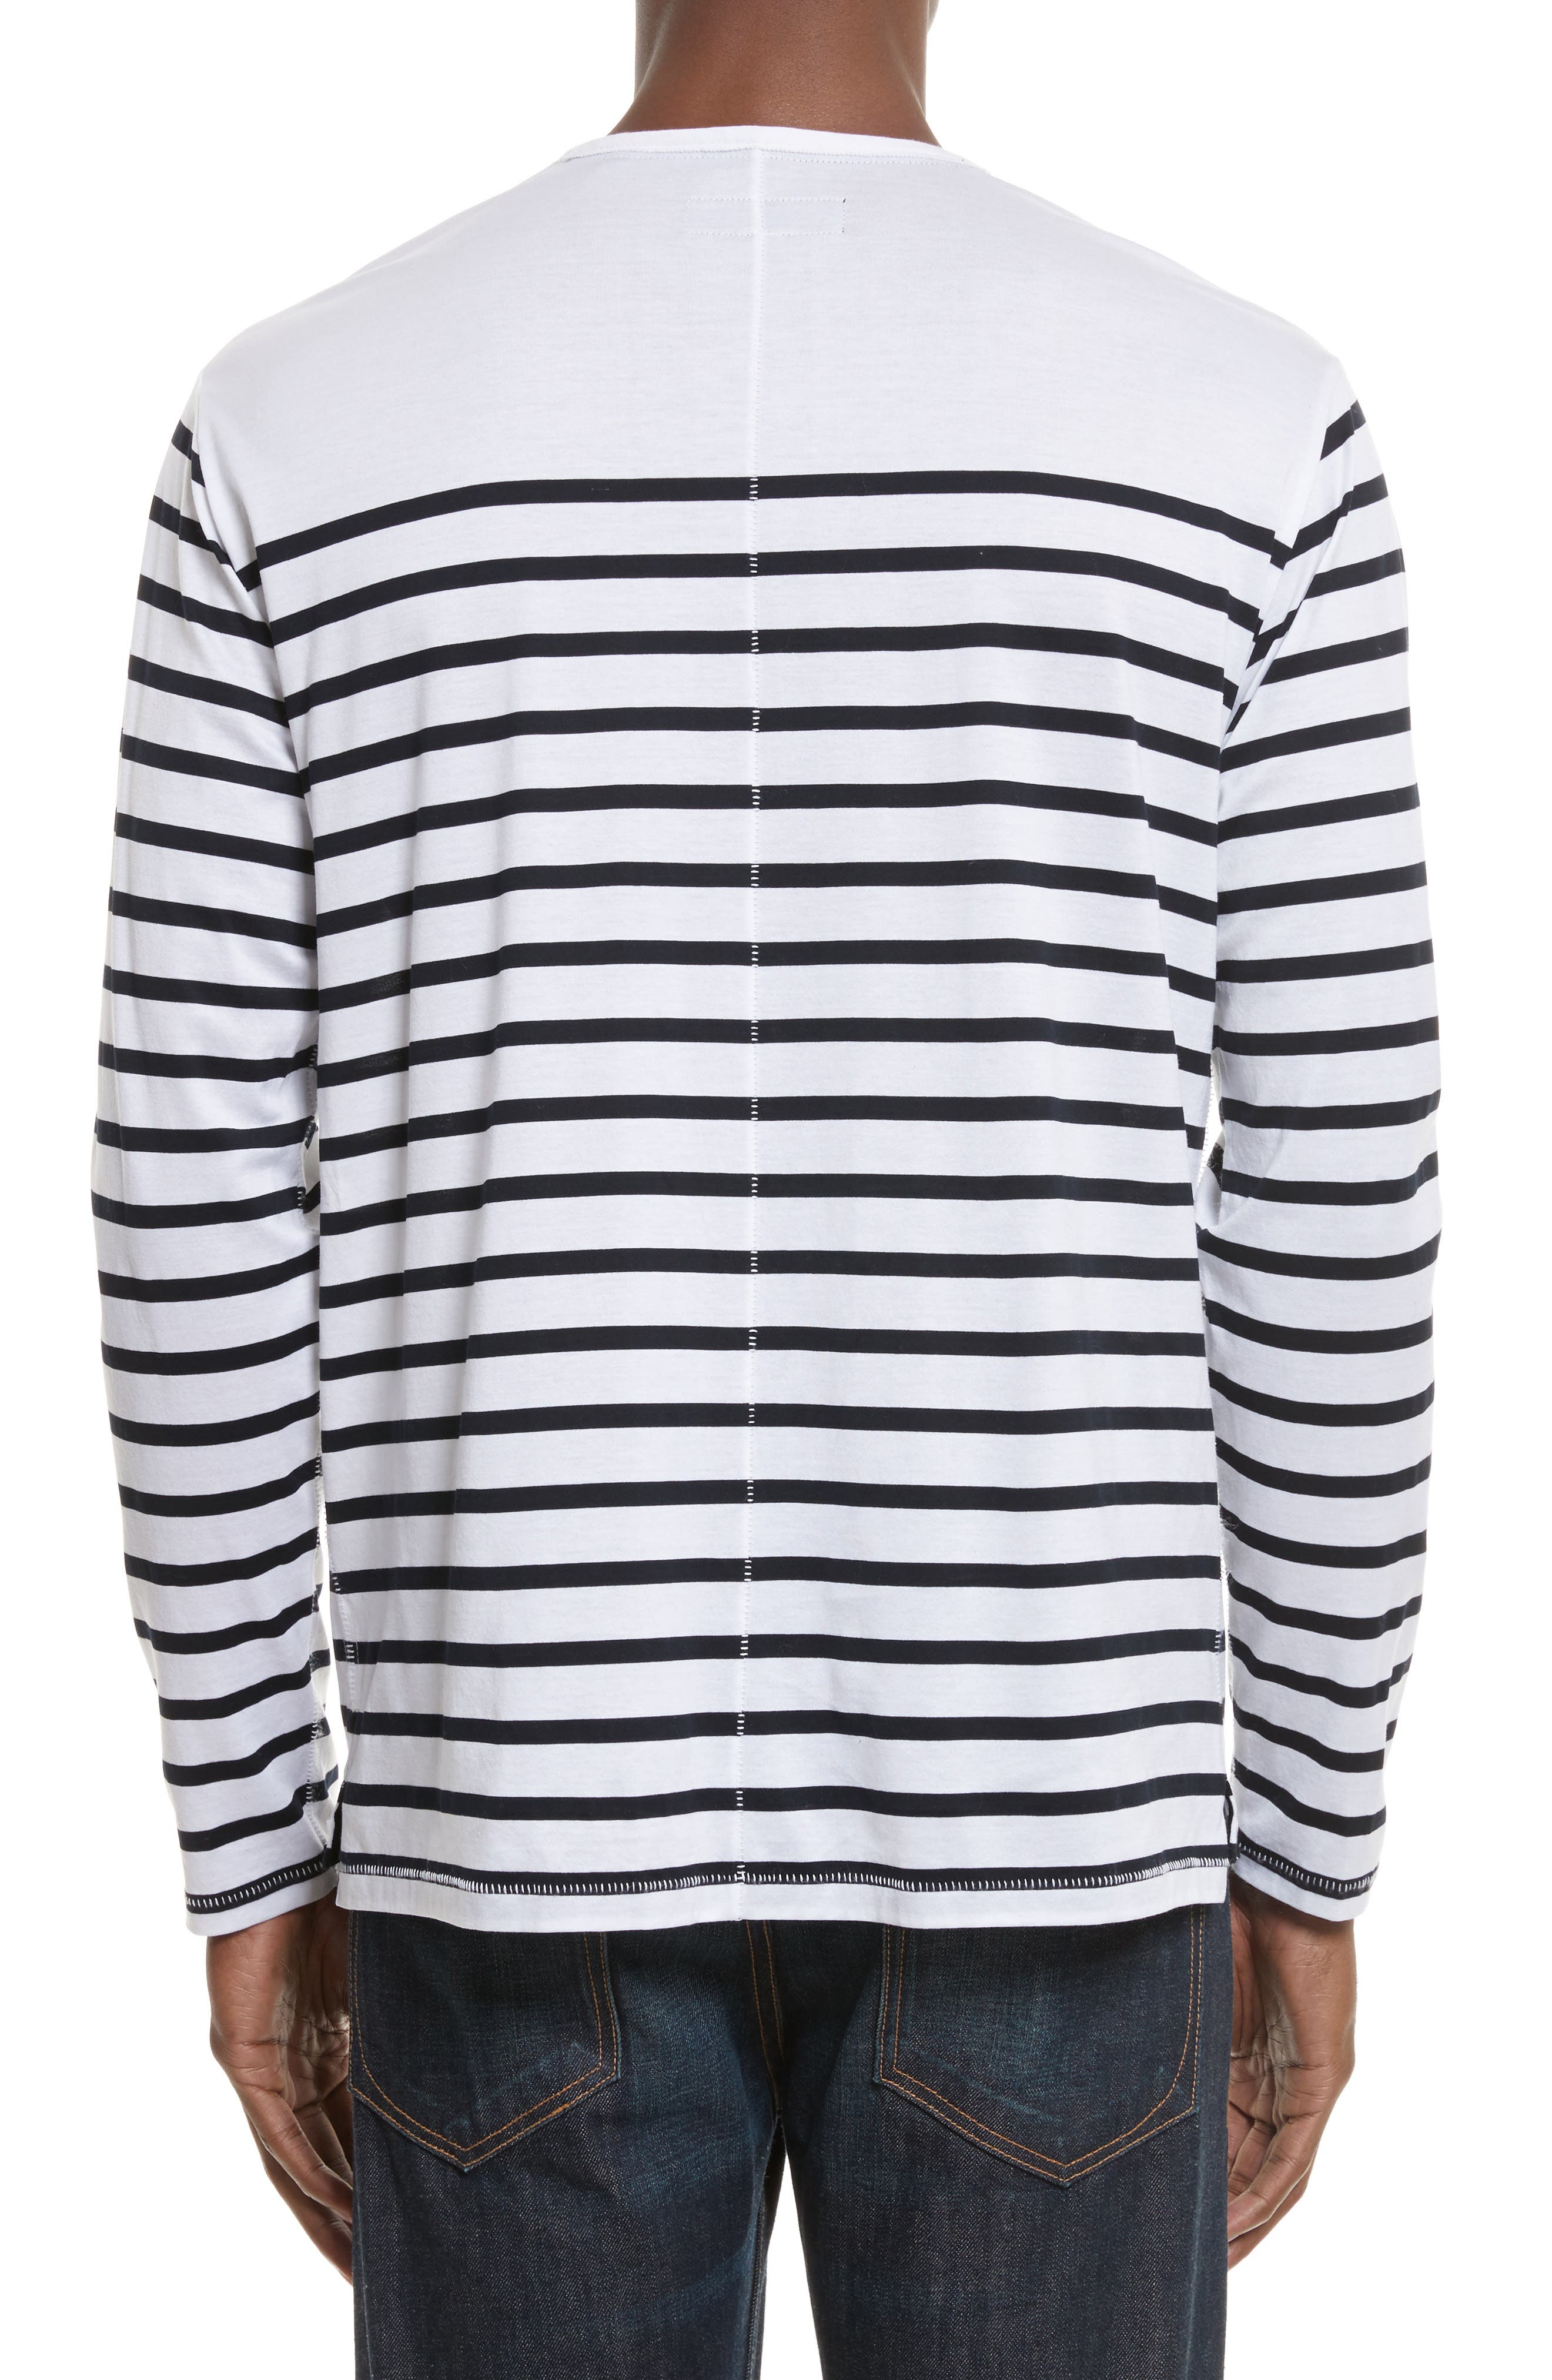 Henry Stripe Long Sleeve T-Shirt,                             Alternate thumbnail 2, color,                             White/ Navy